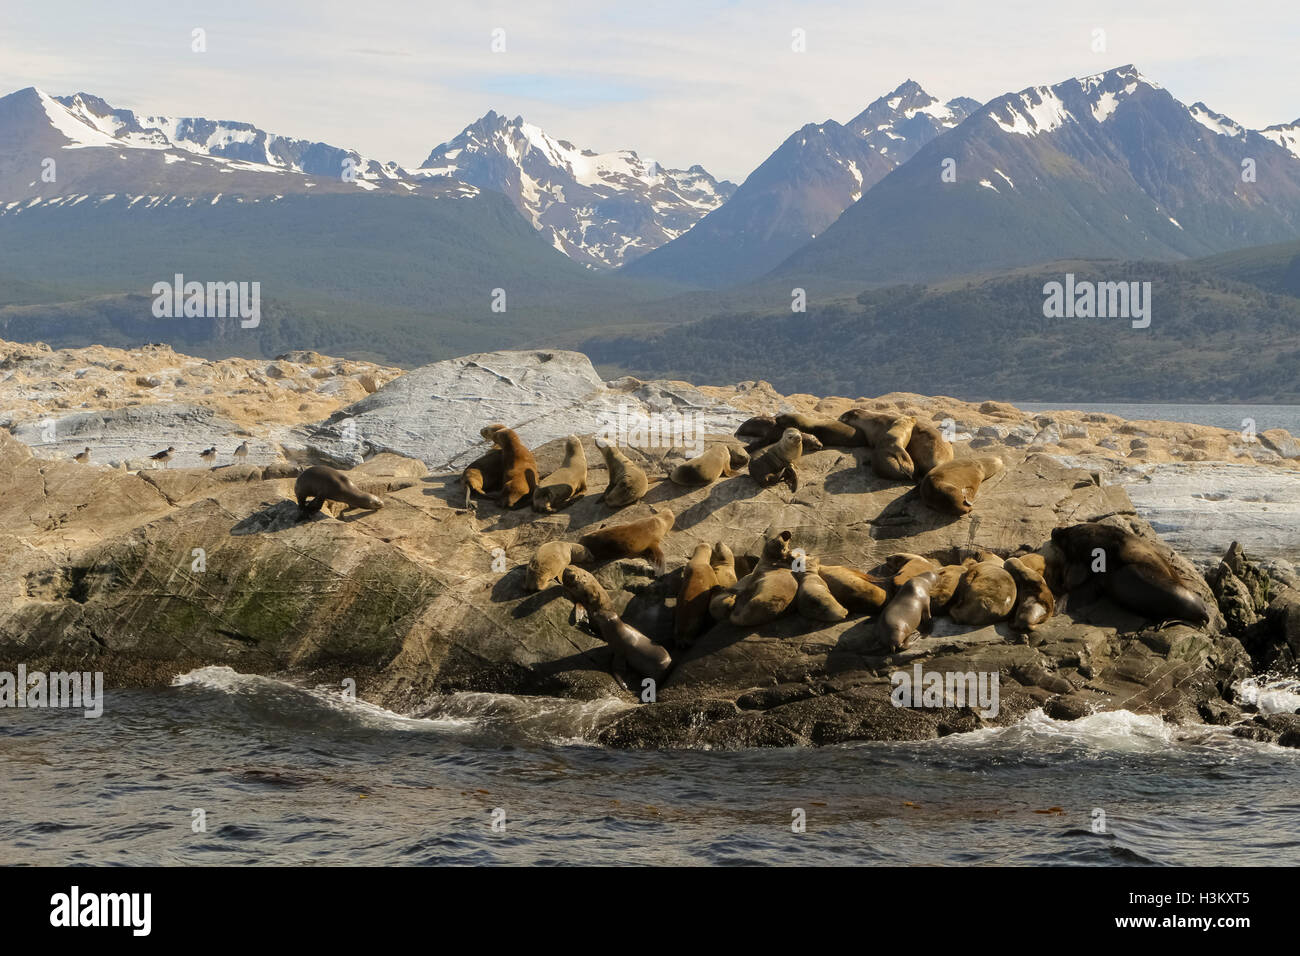 A group of Patagonian sea lions (Otaria flavescens) sunbathing in the middle of Beagle channel, Tierra del Fuego, Stock Photo